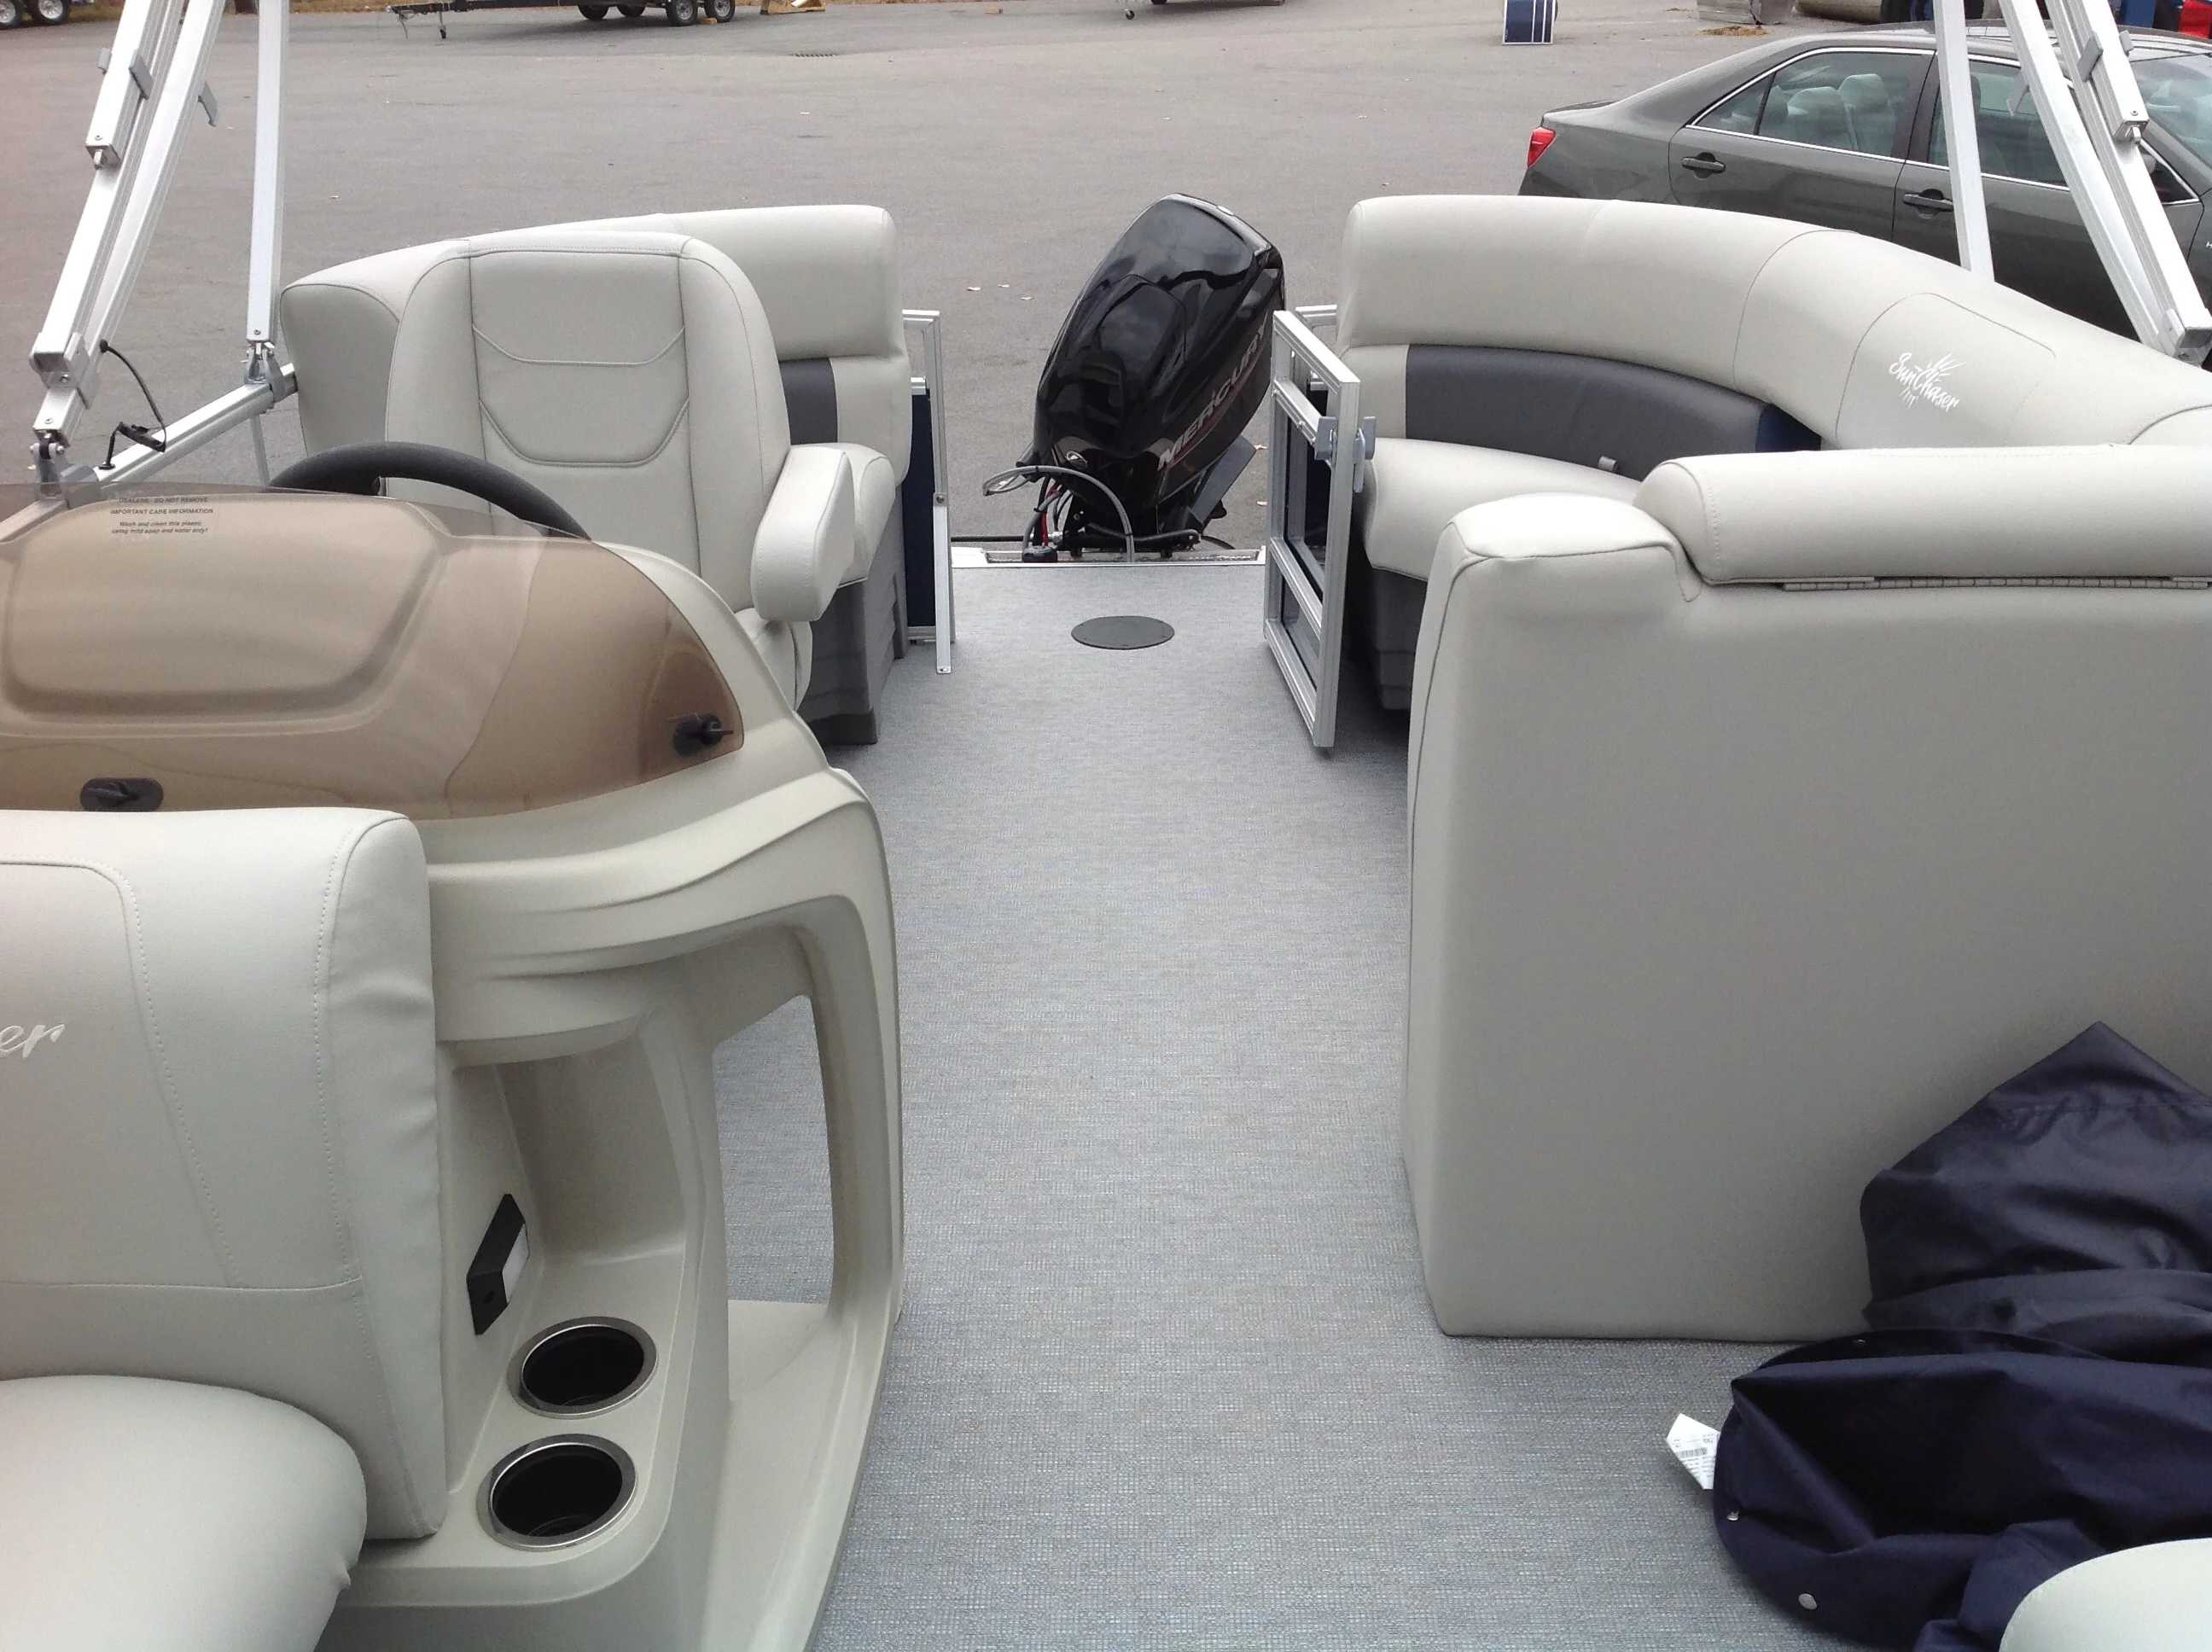 2021 SunChaser boat for sale, model of the boat is Vista & Image # 4 of 8